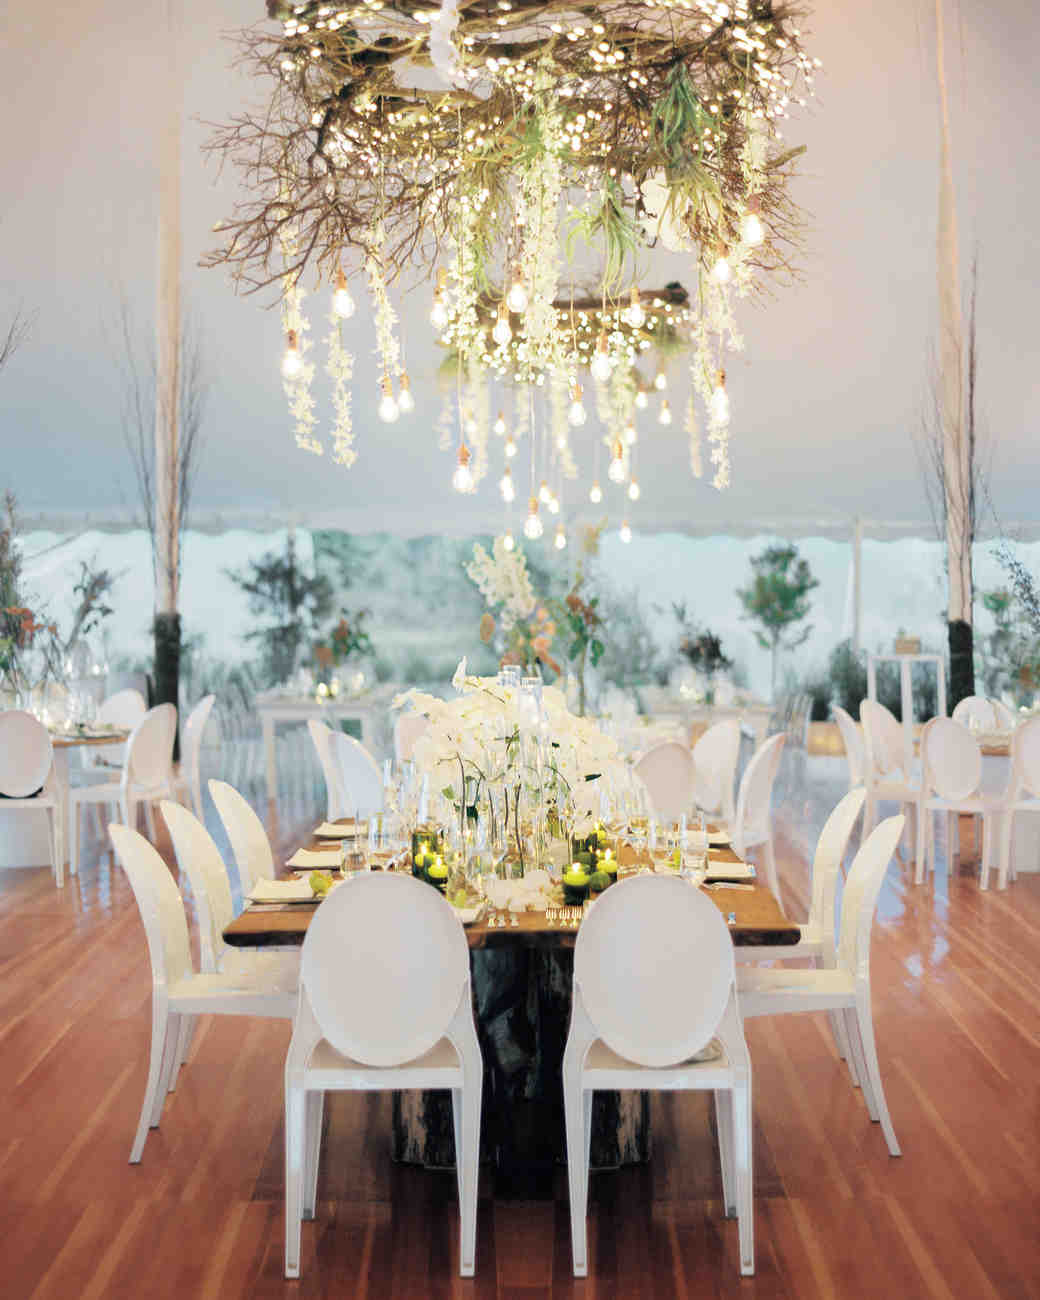 33 Tent Decorating Ideas To Upgrade Your Wedding Reception Martha Stewart Weddings